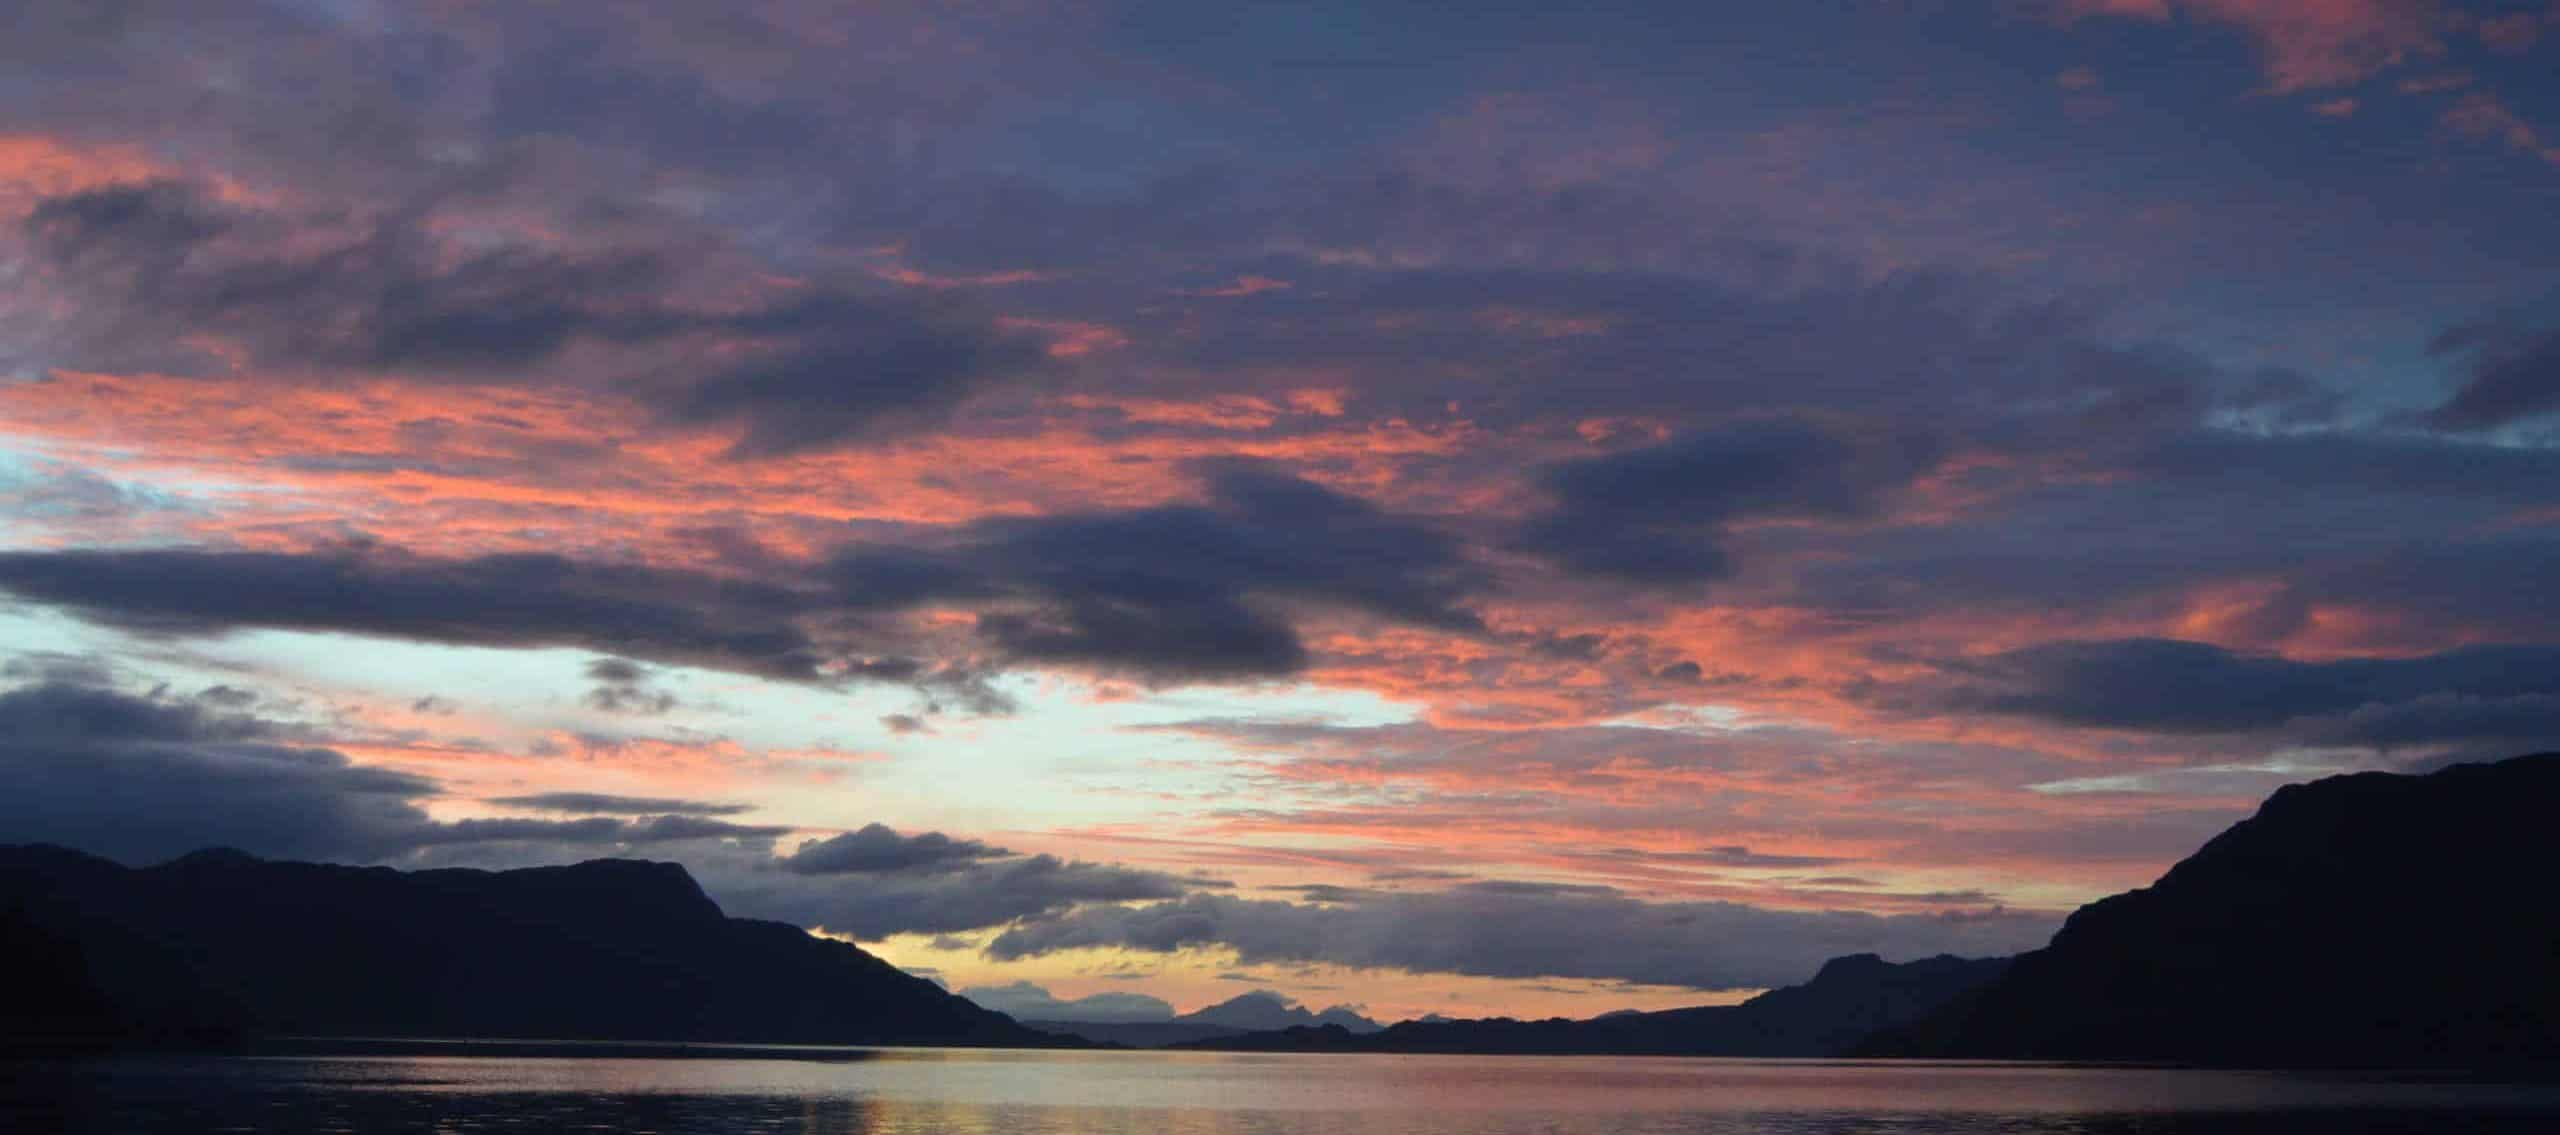 Enjoy amazing sunsets at anchor onboard leader on the west coast of scotland